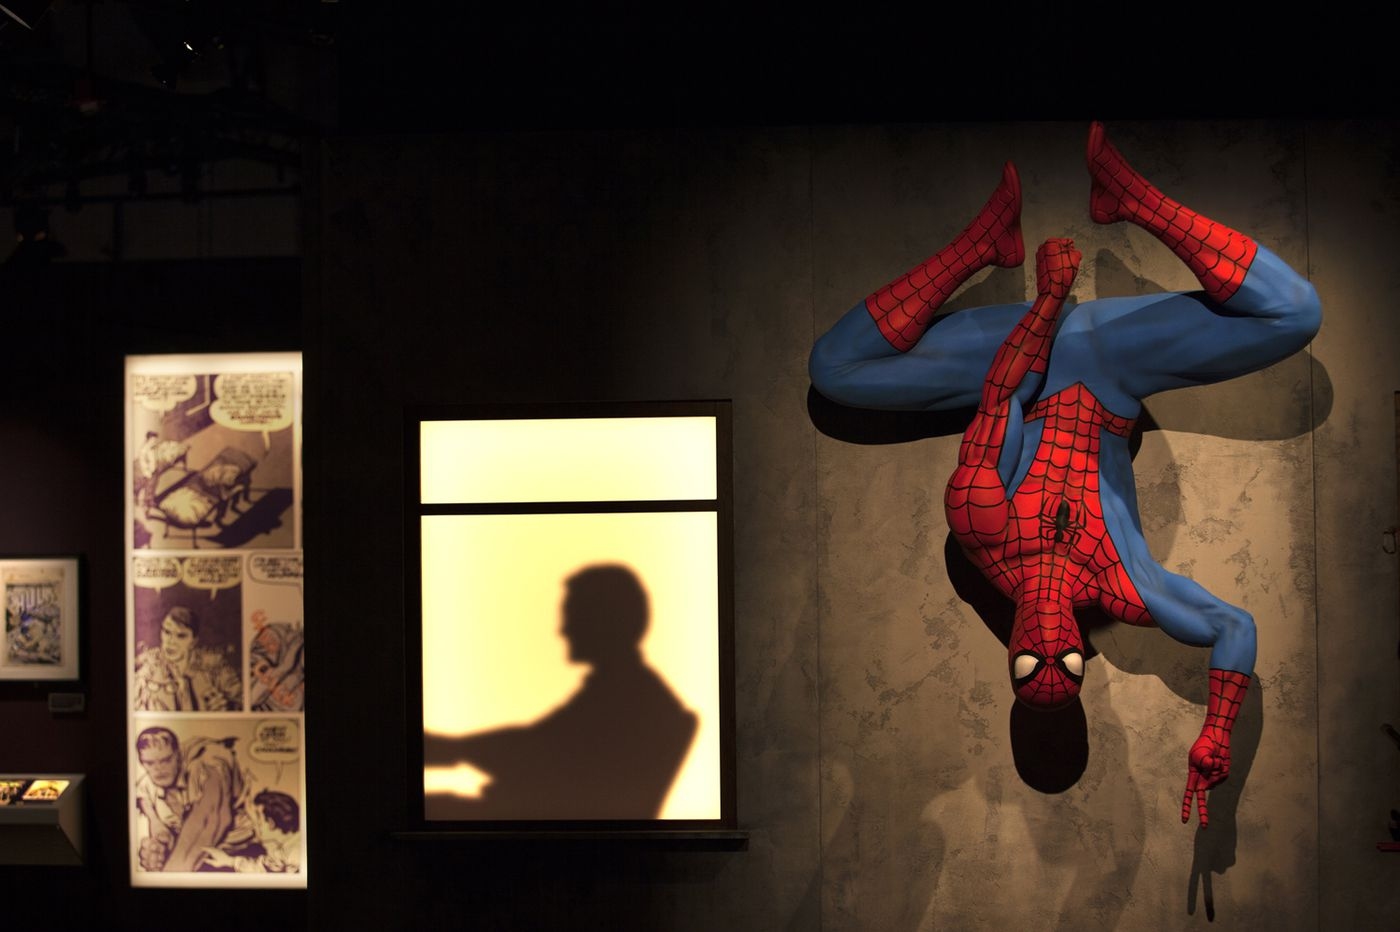 Big shows in Philly museums: Mermaids, Marvel superheroes, Civil War, a peek at Mutter expansion